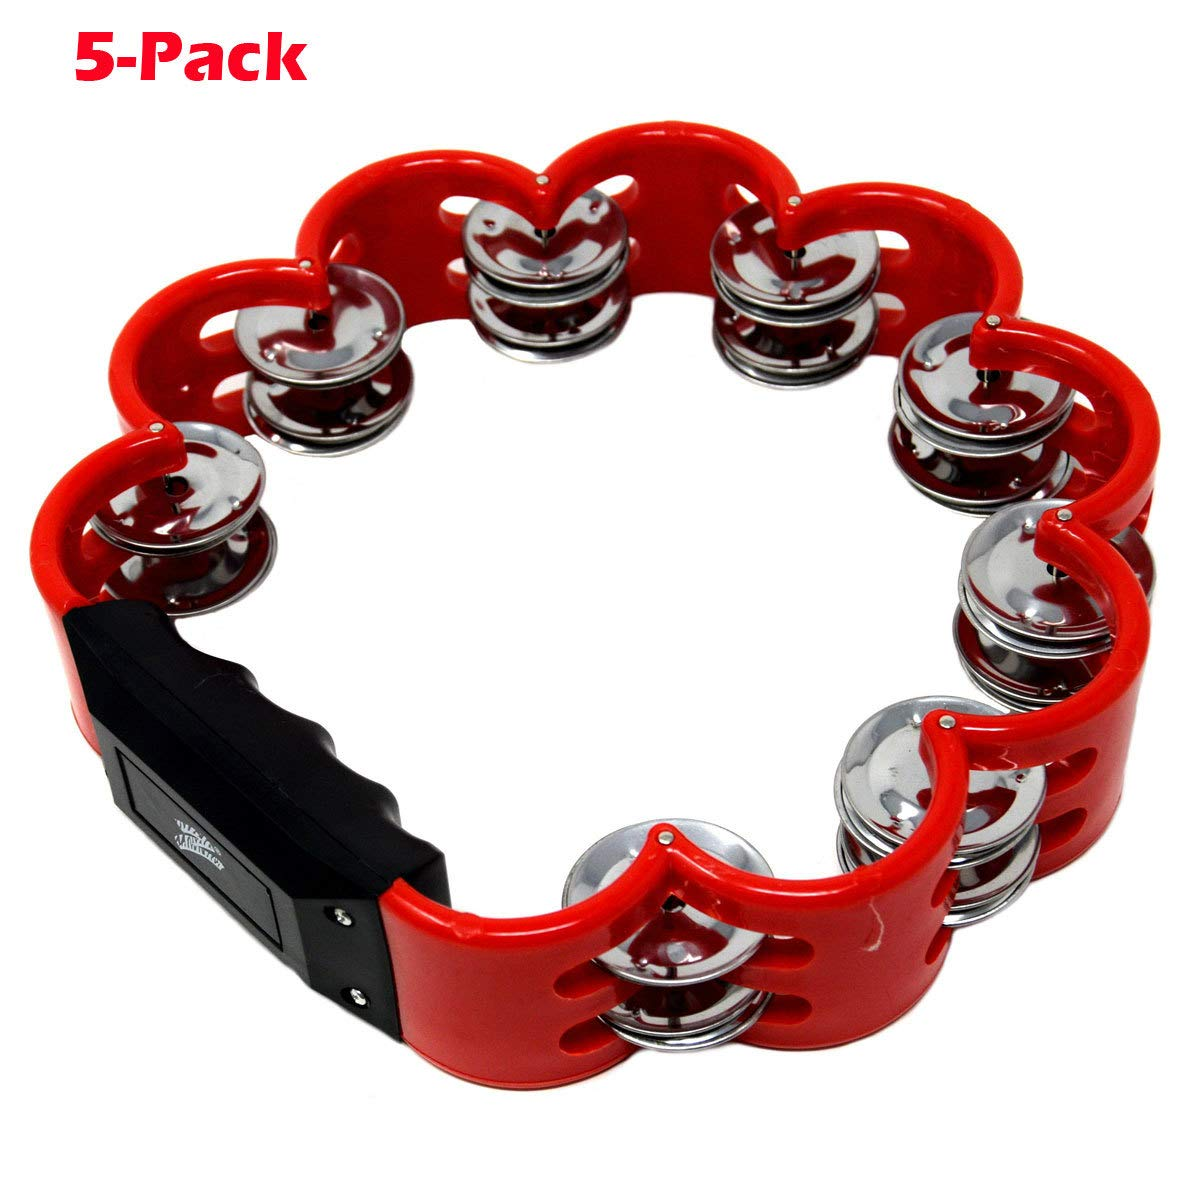 5-Pack Musical Tambourine Flower Style Percussion Drum 8 Double Row Metal Jingles Red by Zebra